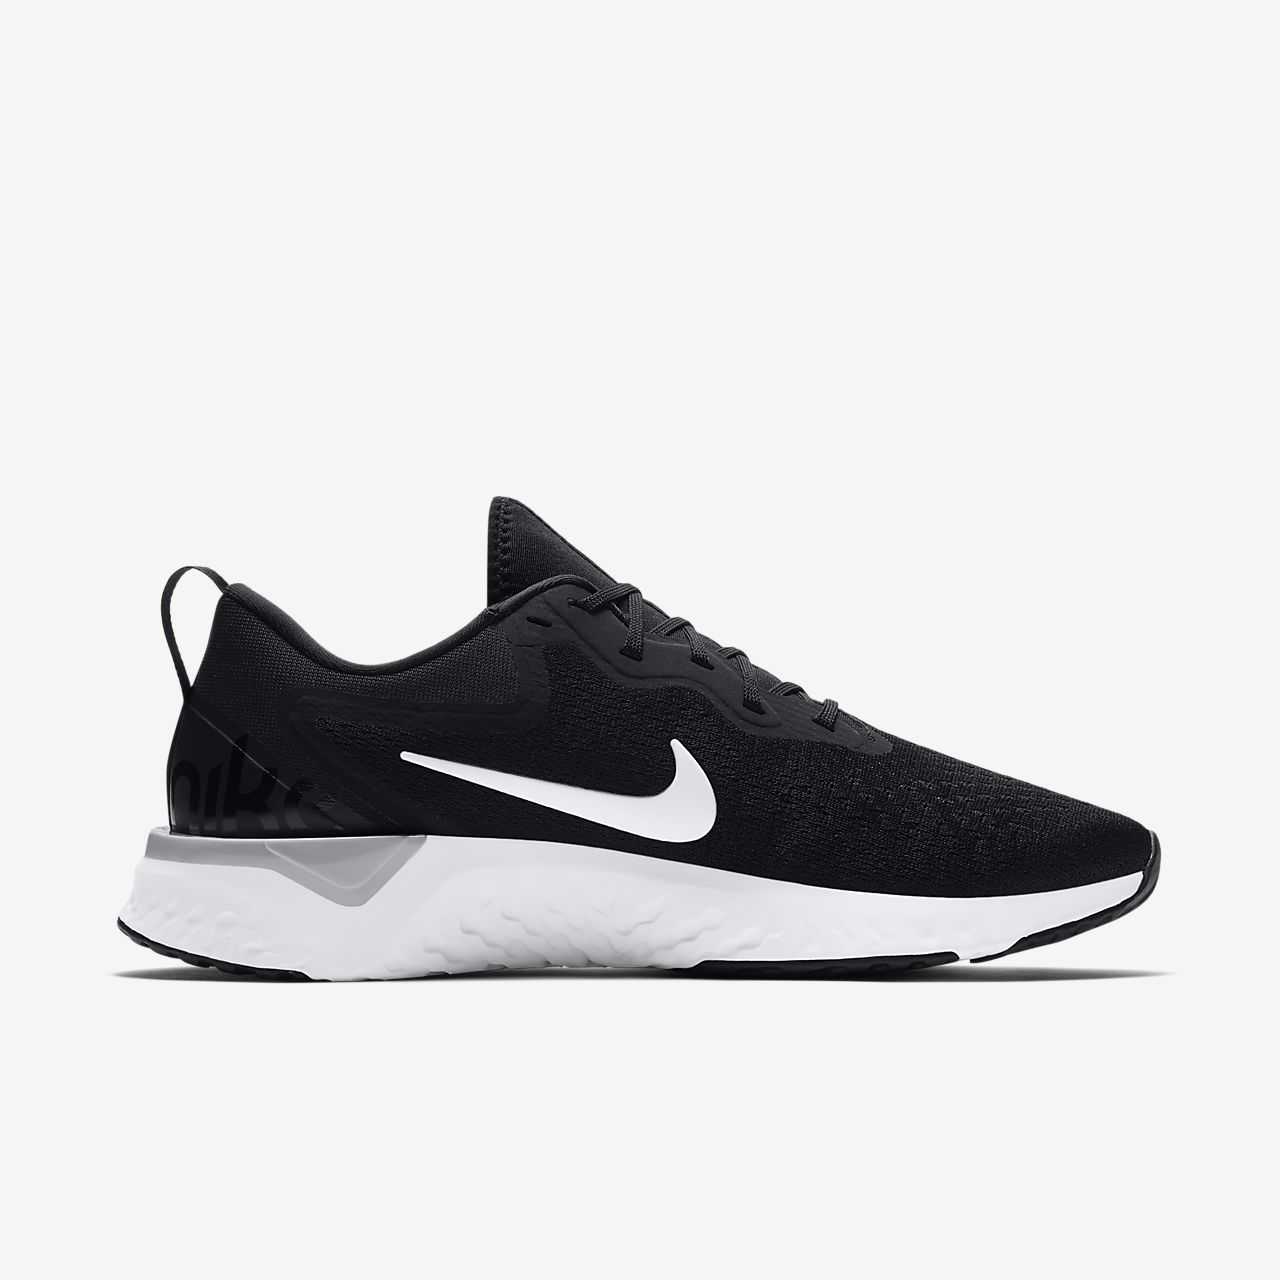 b5b4d3544a8 Nike Odyssey React Men s Running Shoe. Nike.com MY